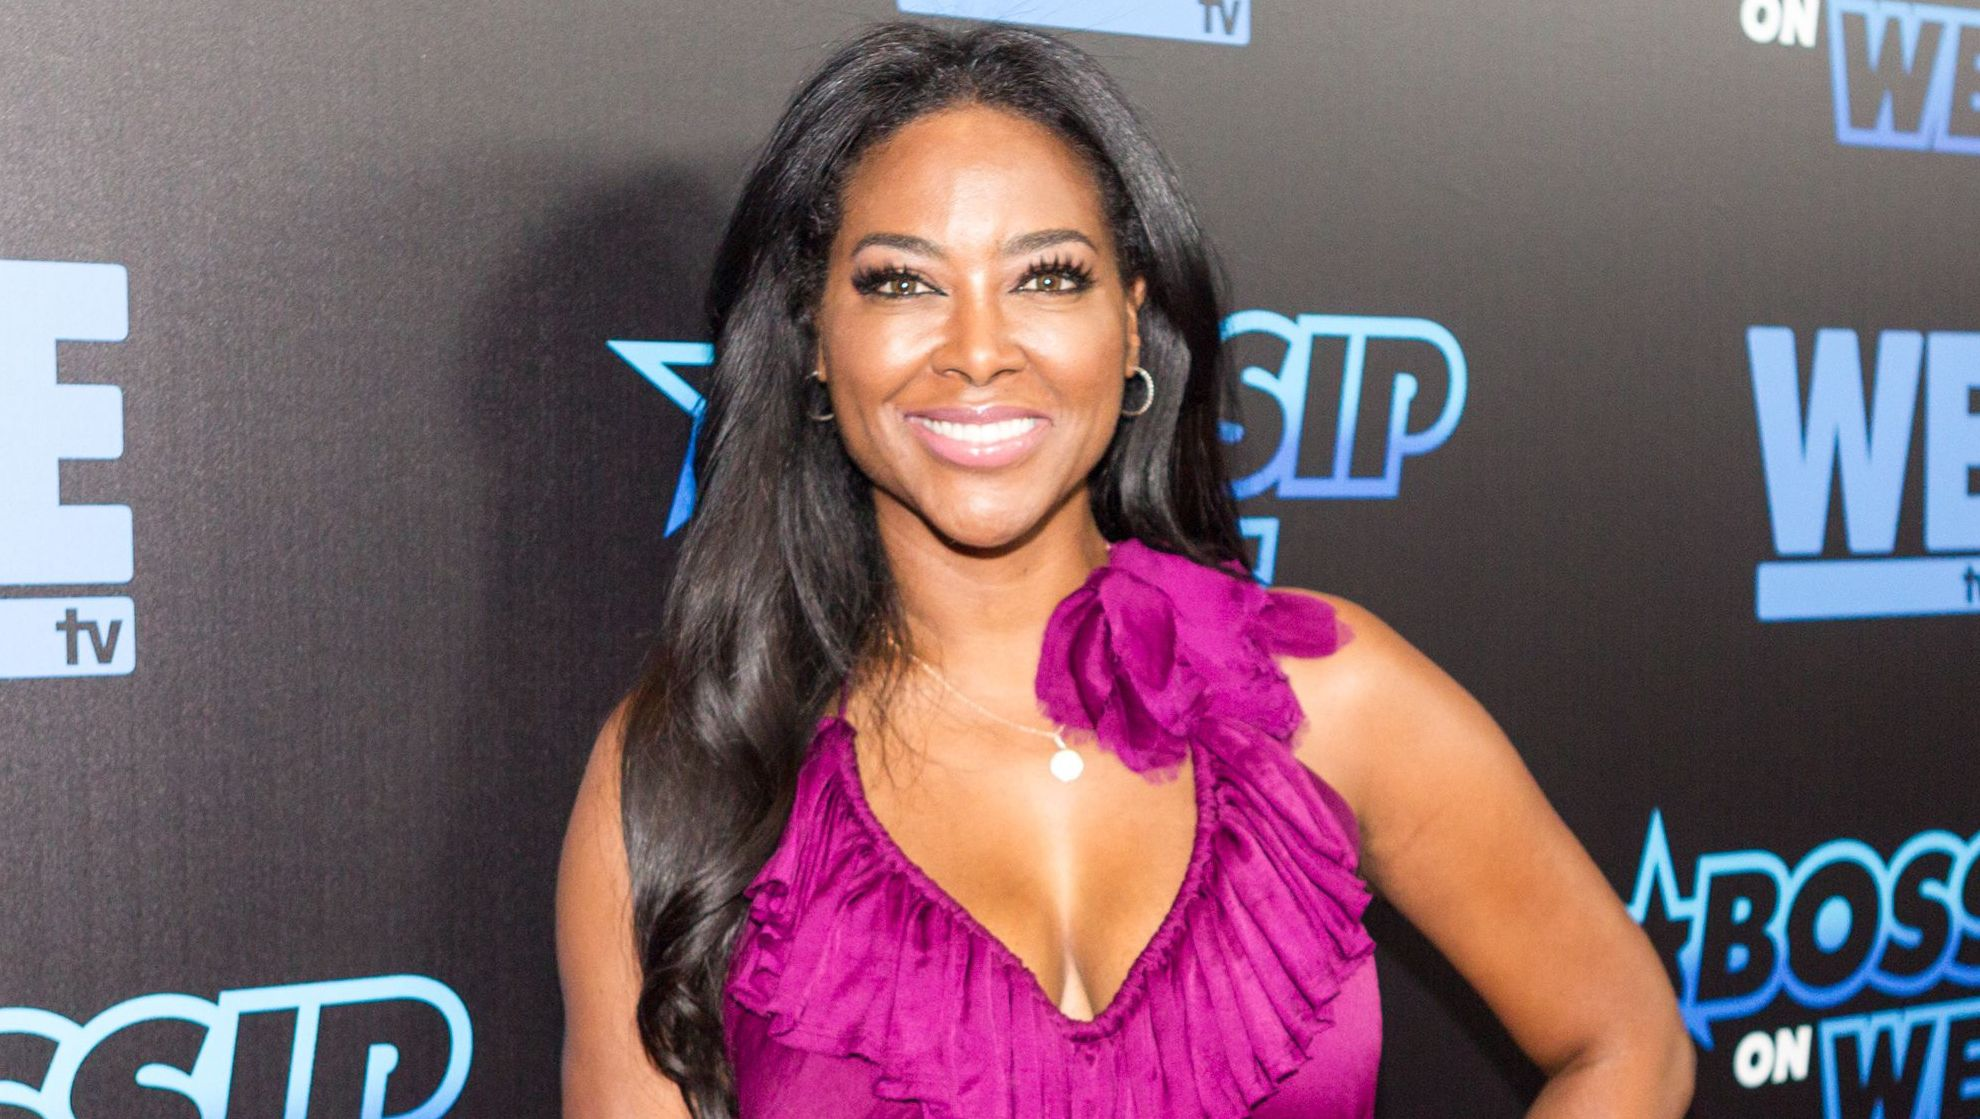 Kenya Moore Talks About Dancing And Trusting Your Partner